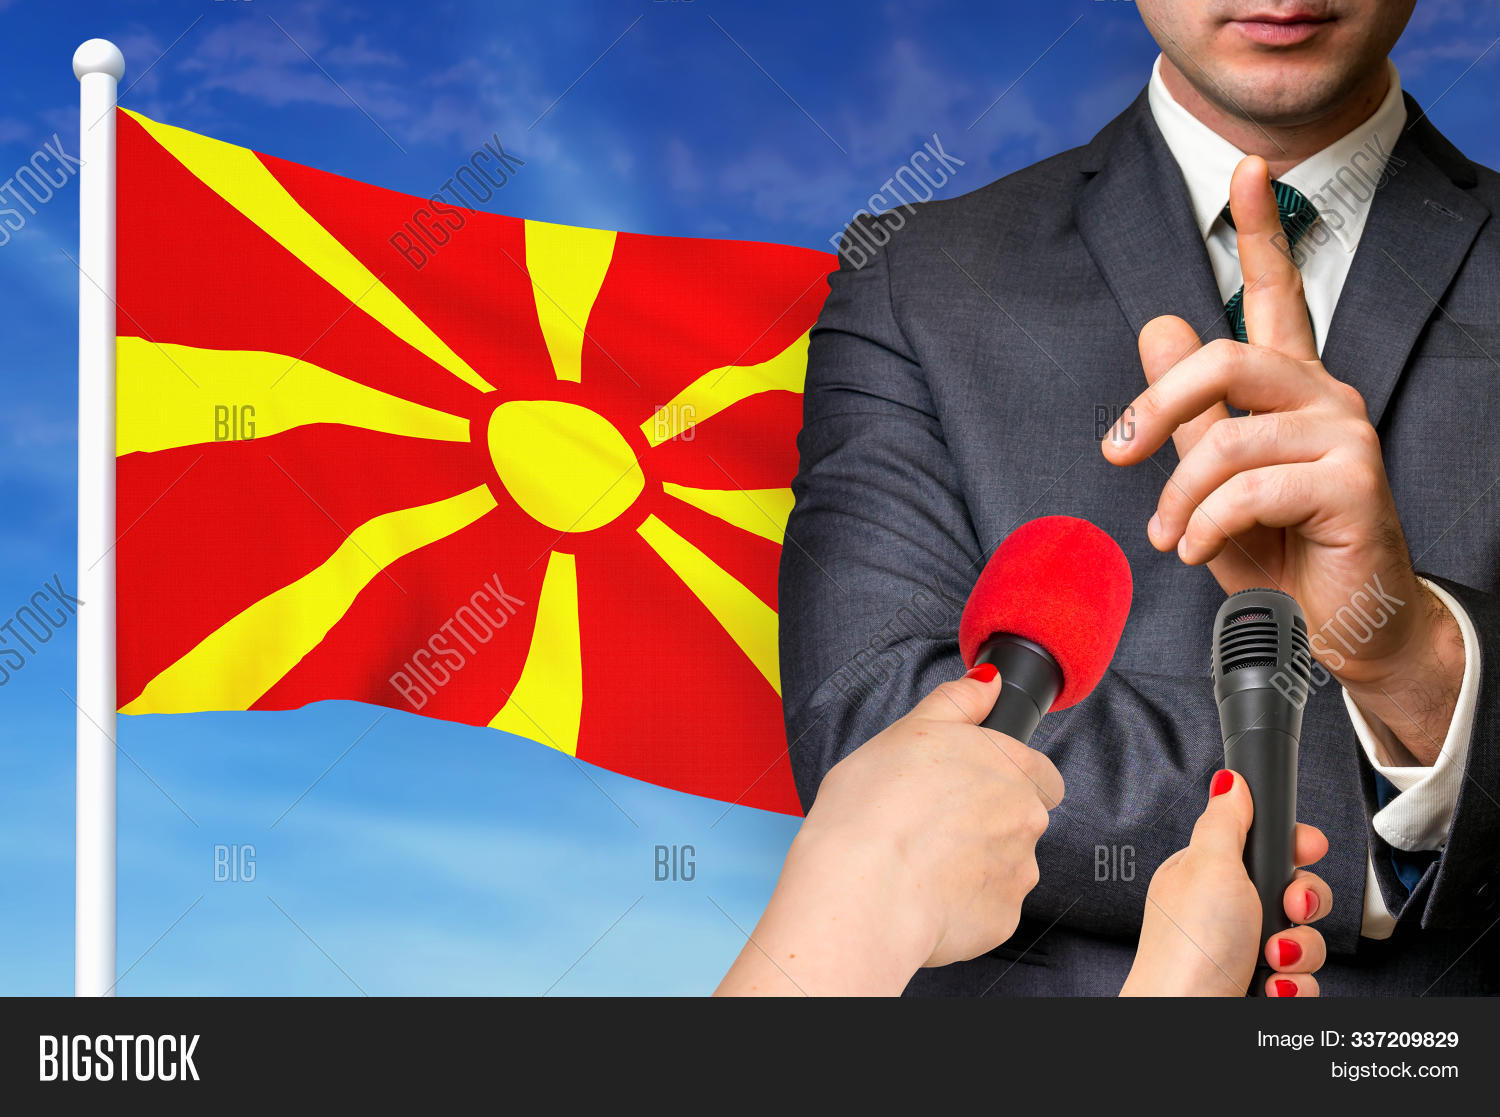 3d,auditorium,campaign,candidate,citizen,conference,convention,crowd,debate,democracy,election,flag,government,illustration,interview,macedonia,macedonian,man,media,mic,microphone,minister,national,nationality,parliament,podium,political,politician,politics,polling,premier,president,presidential,press,public,rendered,reportage,speaker,speech,suit,talk,tribune